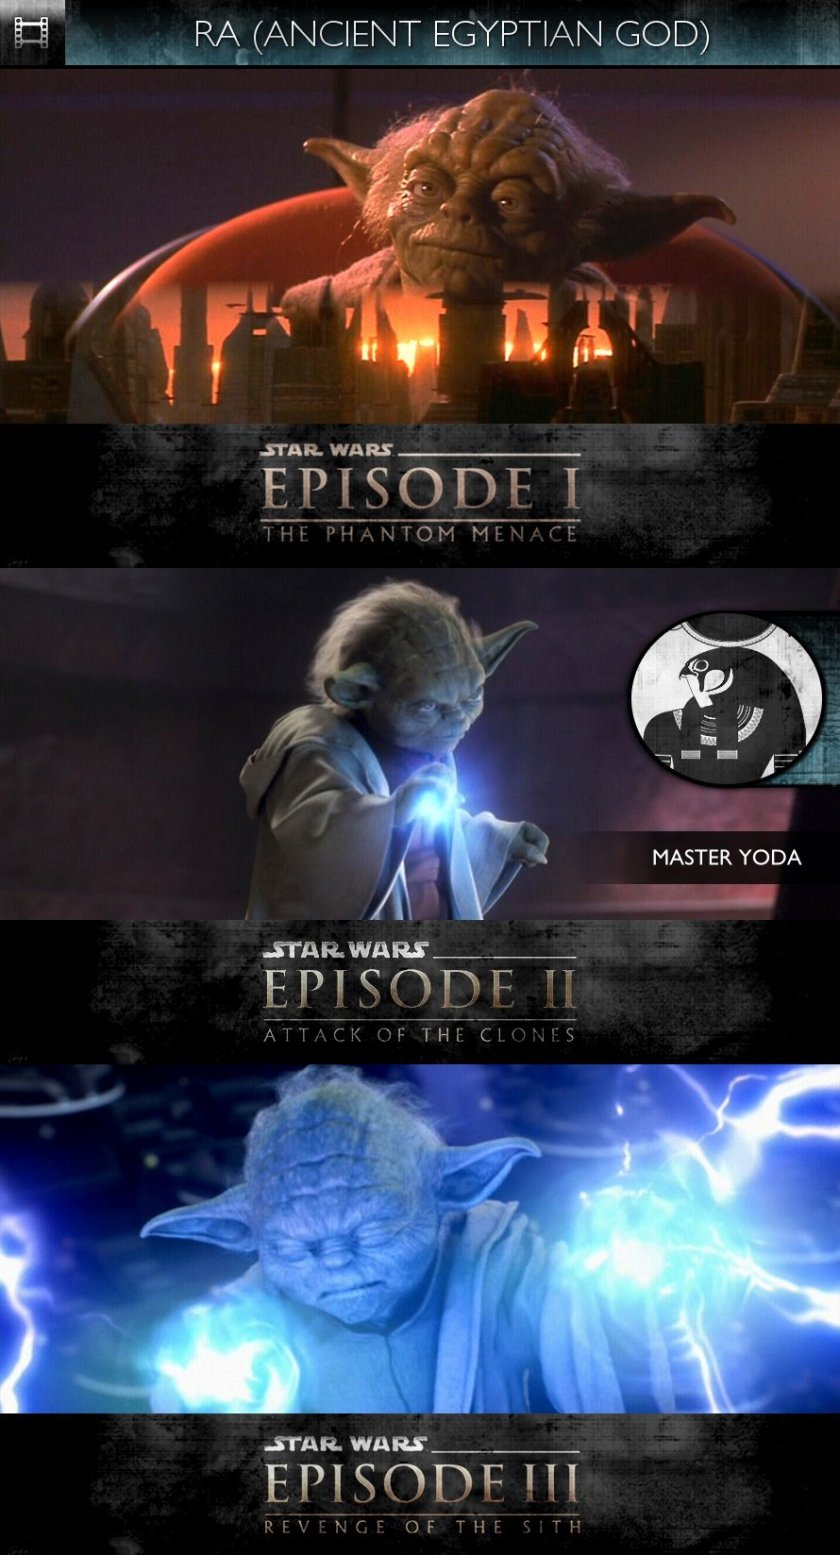 RA - Star Wars: Prequel Trilogy (1999-2005) - Master Yoda